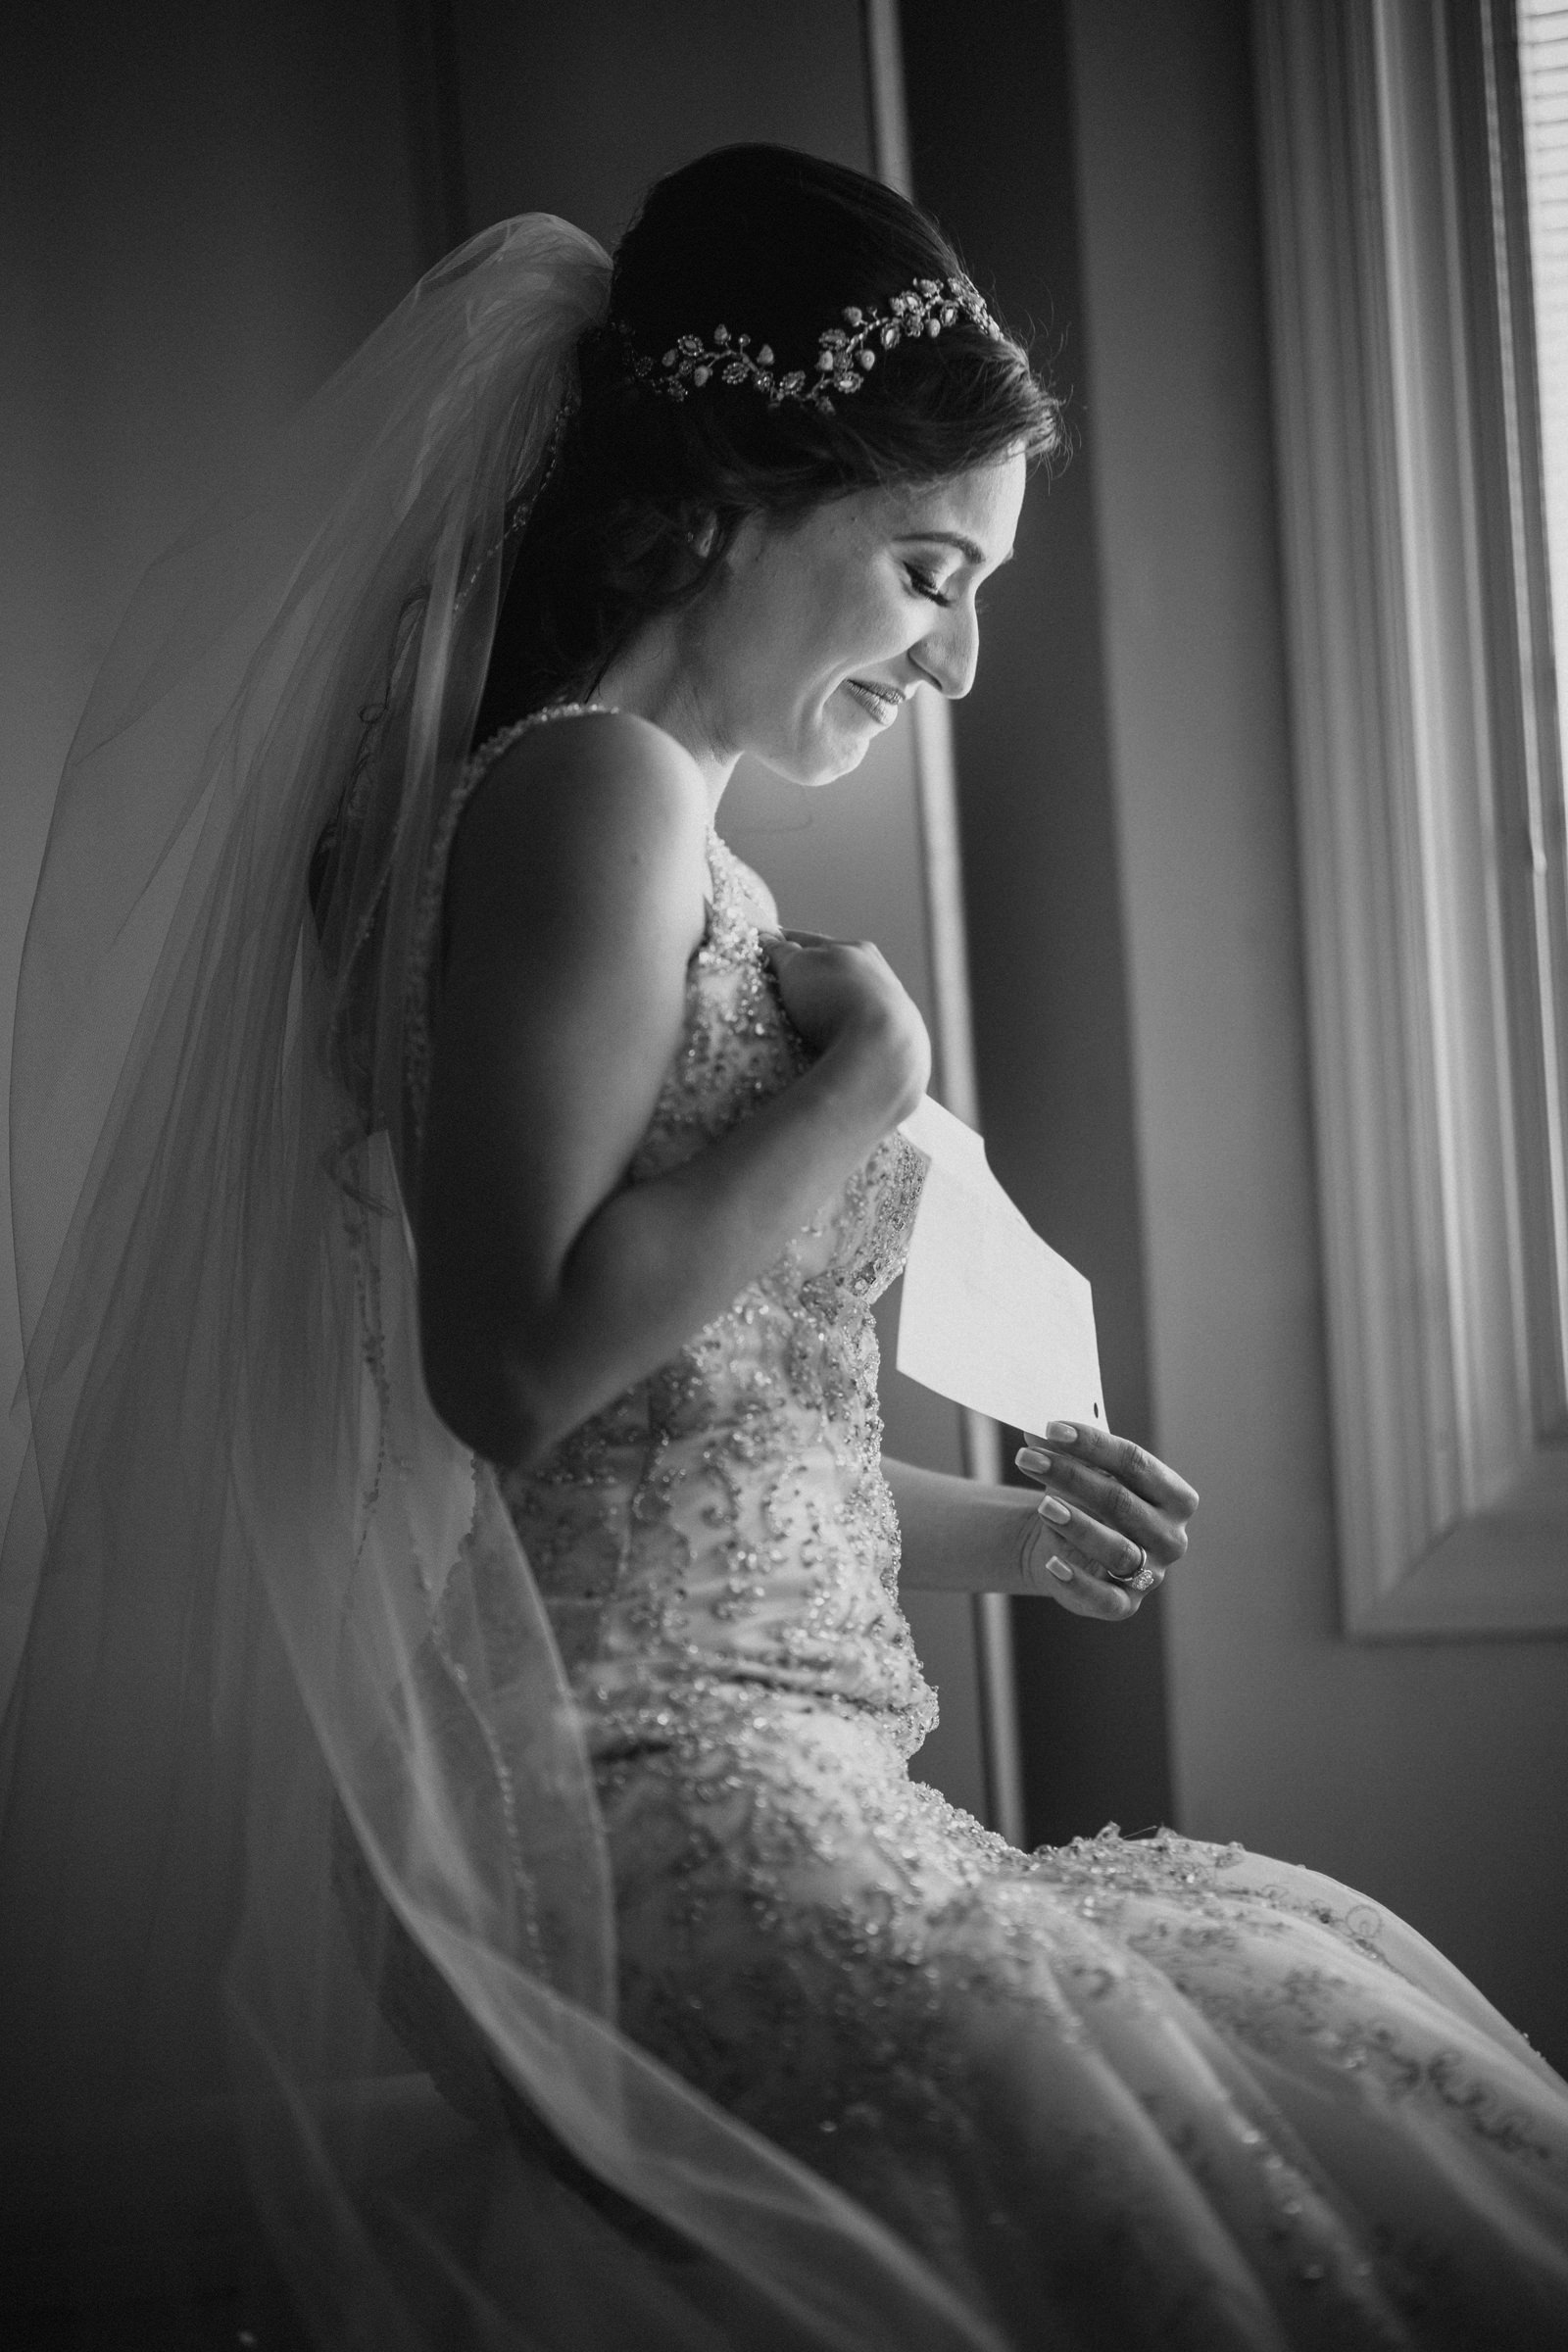 Emotional bride reads groom letter - Photo by Susan Stripling Photography